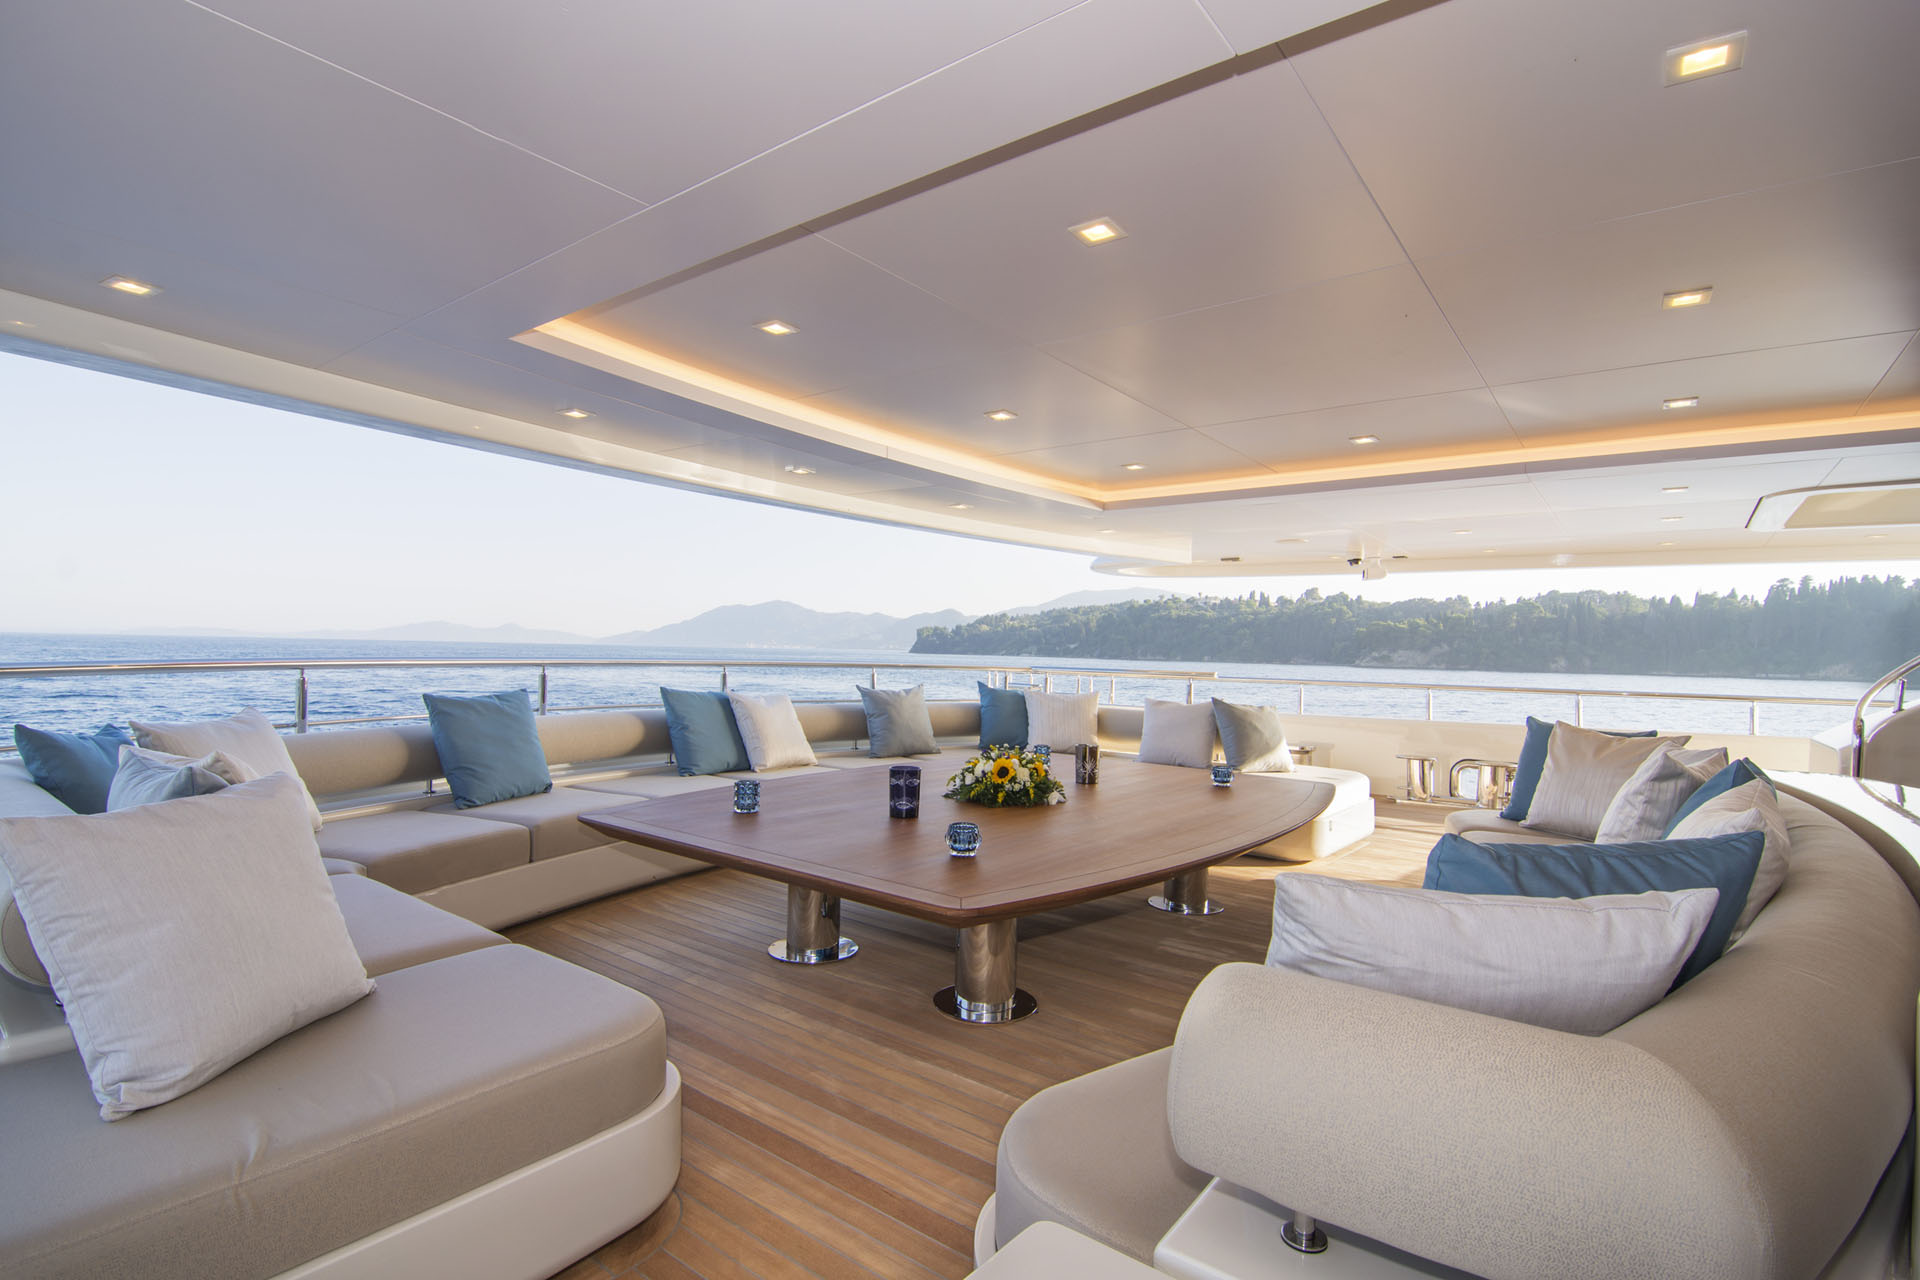 Huge Aft Deck Seating Area